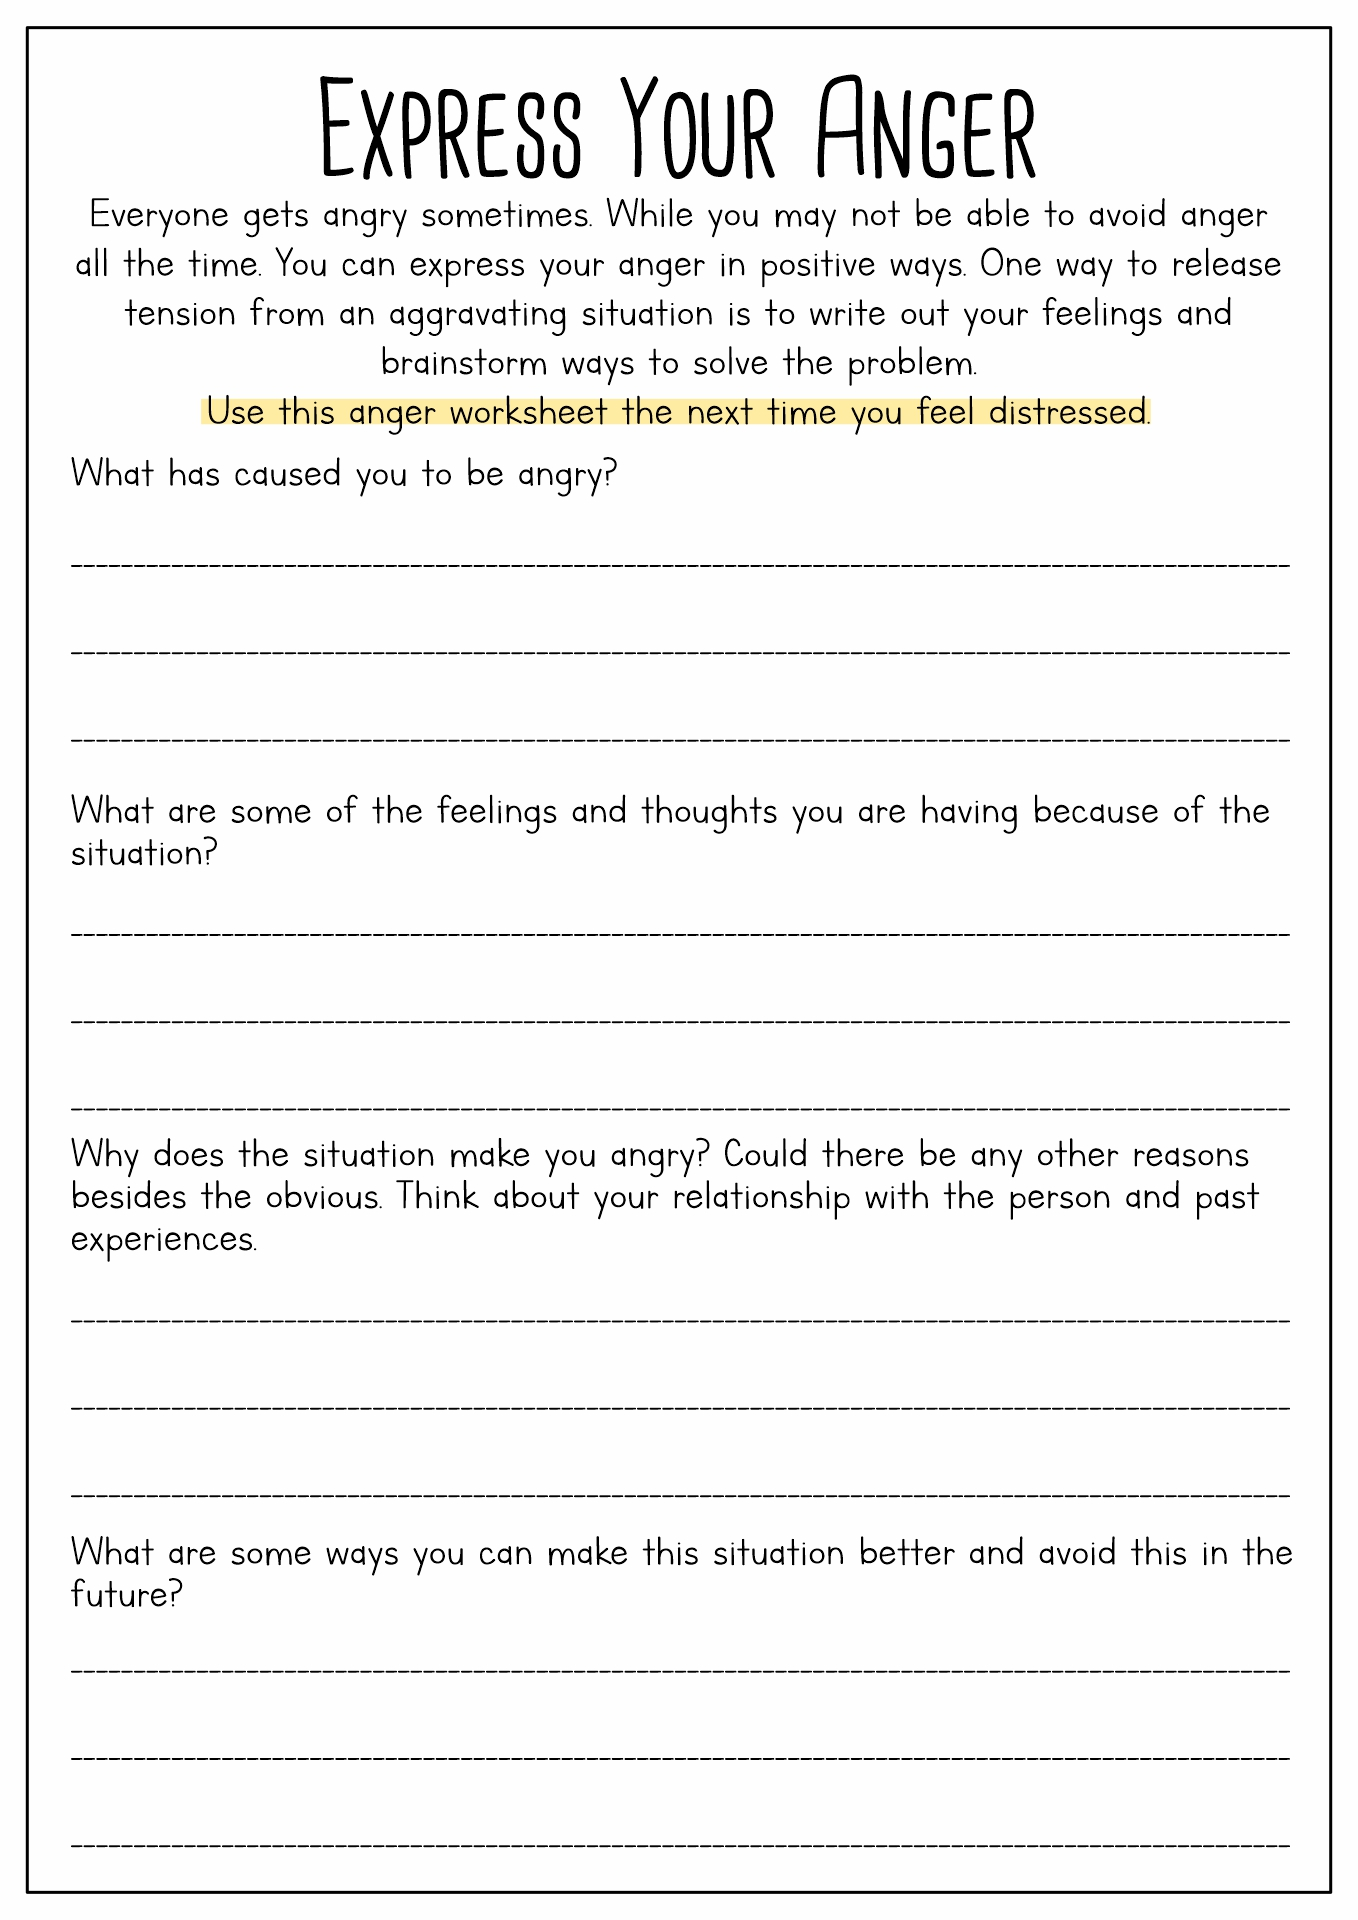 19 Best Images Of Anger Worksheets For Adults